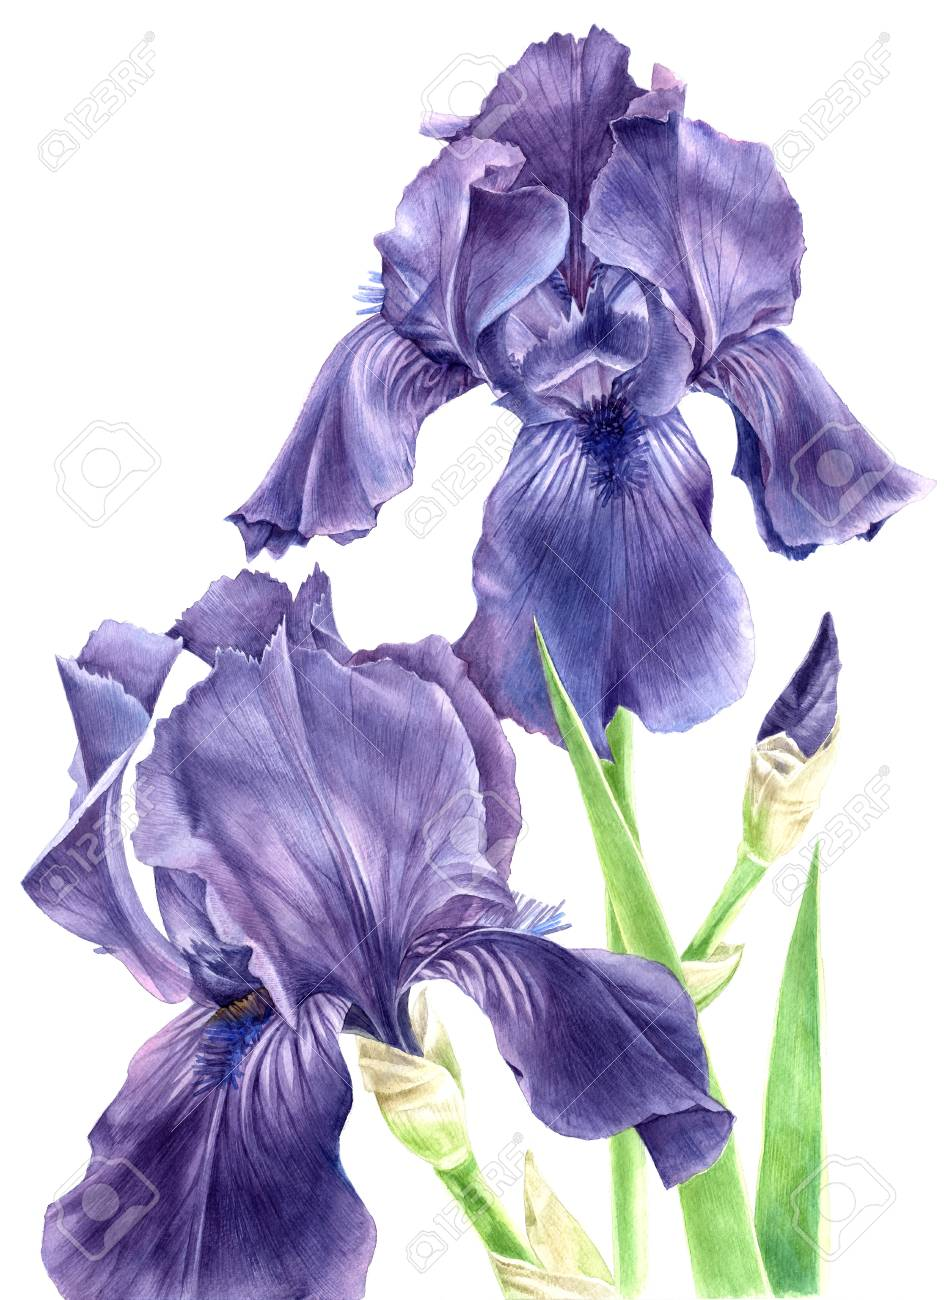 Hand Drawn Watercolor Iris Flowers Stock Photo Picture And